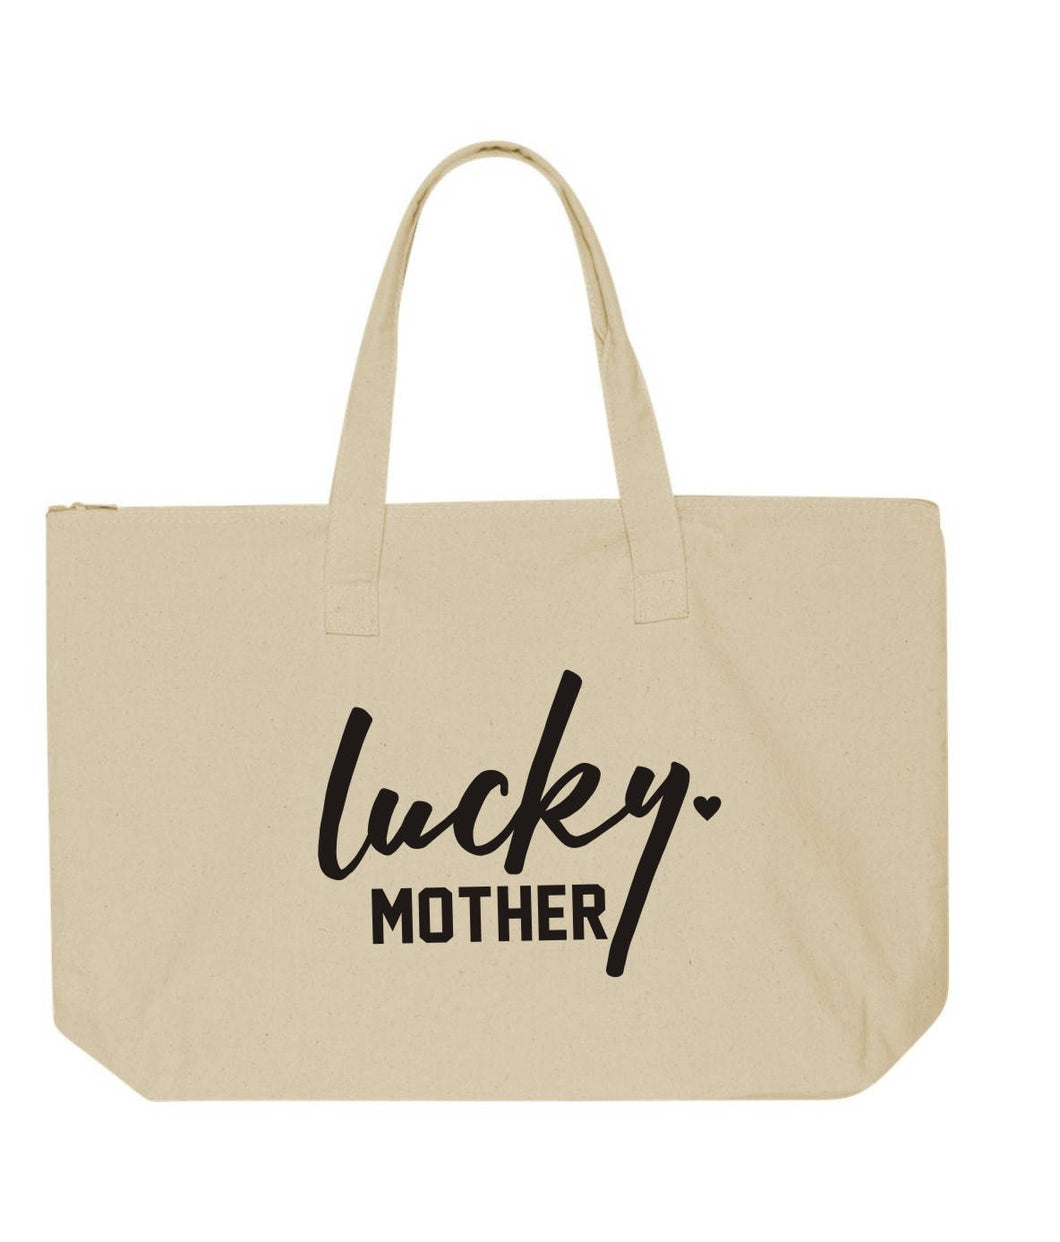 Lucky Mother Zipper Tote Bag | Beach Bag | Hospital Bag